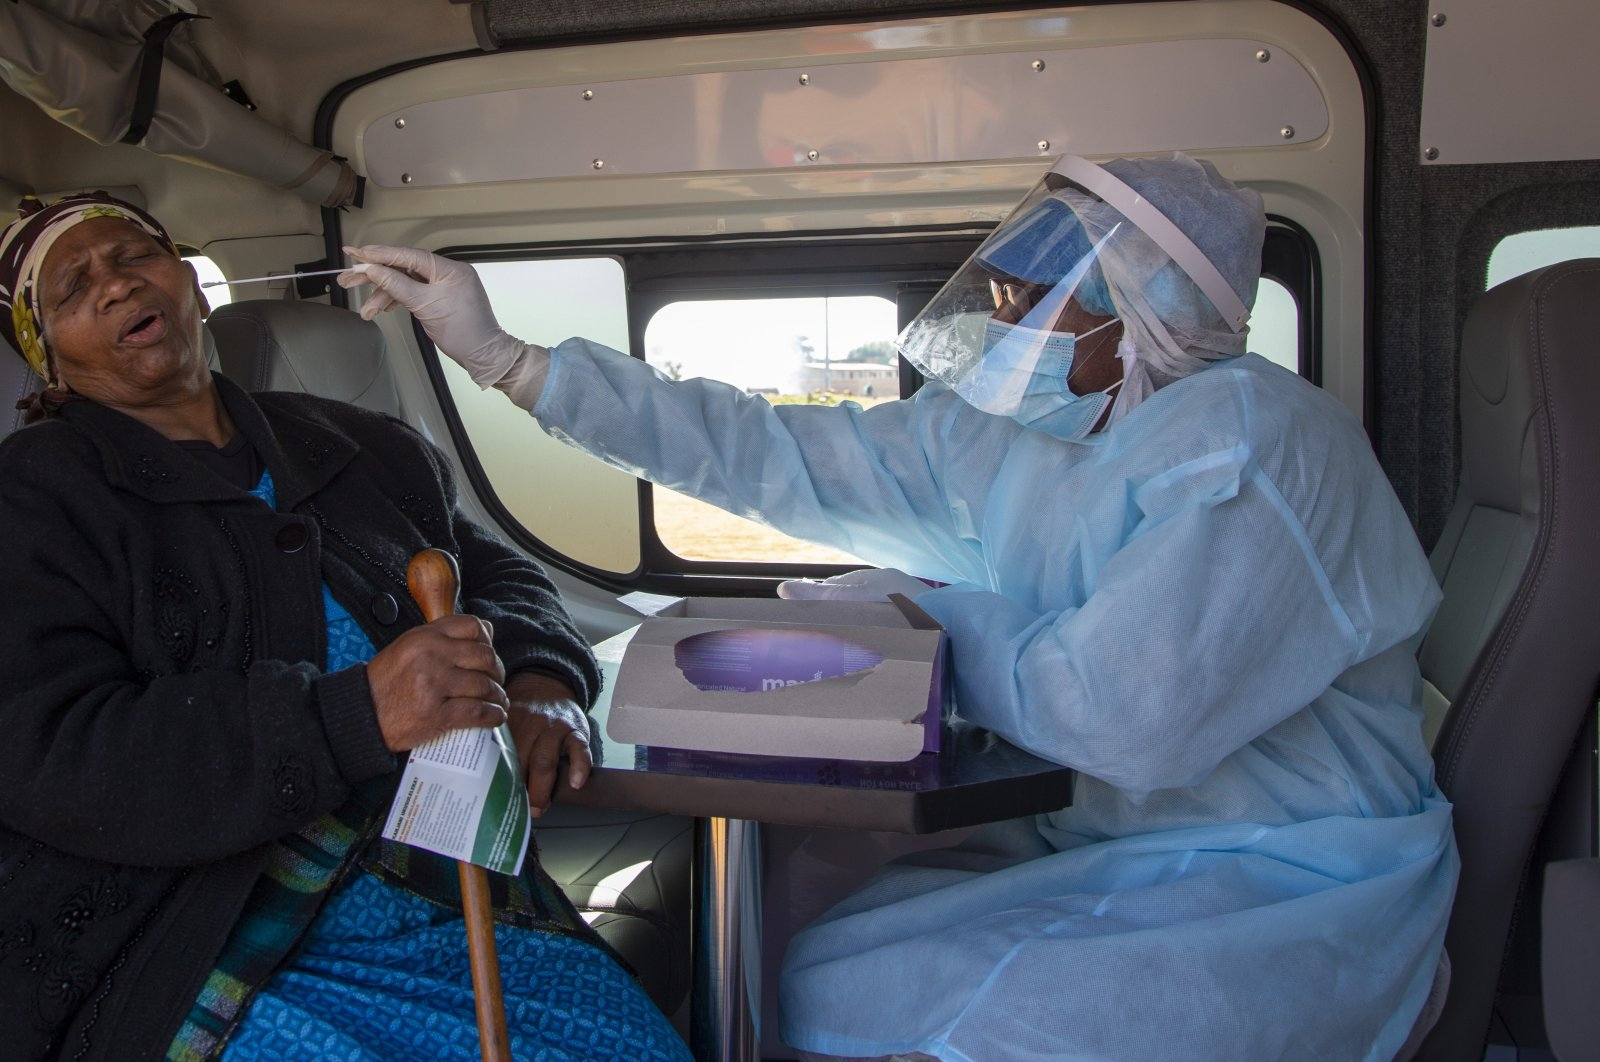 An elderly woman reacts as a health worker collects a sample for a COVID-19 test, near Johannesburg, South Africa, May 22, 2020. (AP Photo)